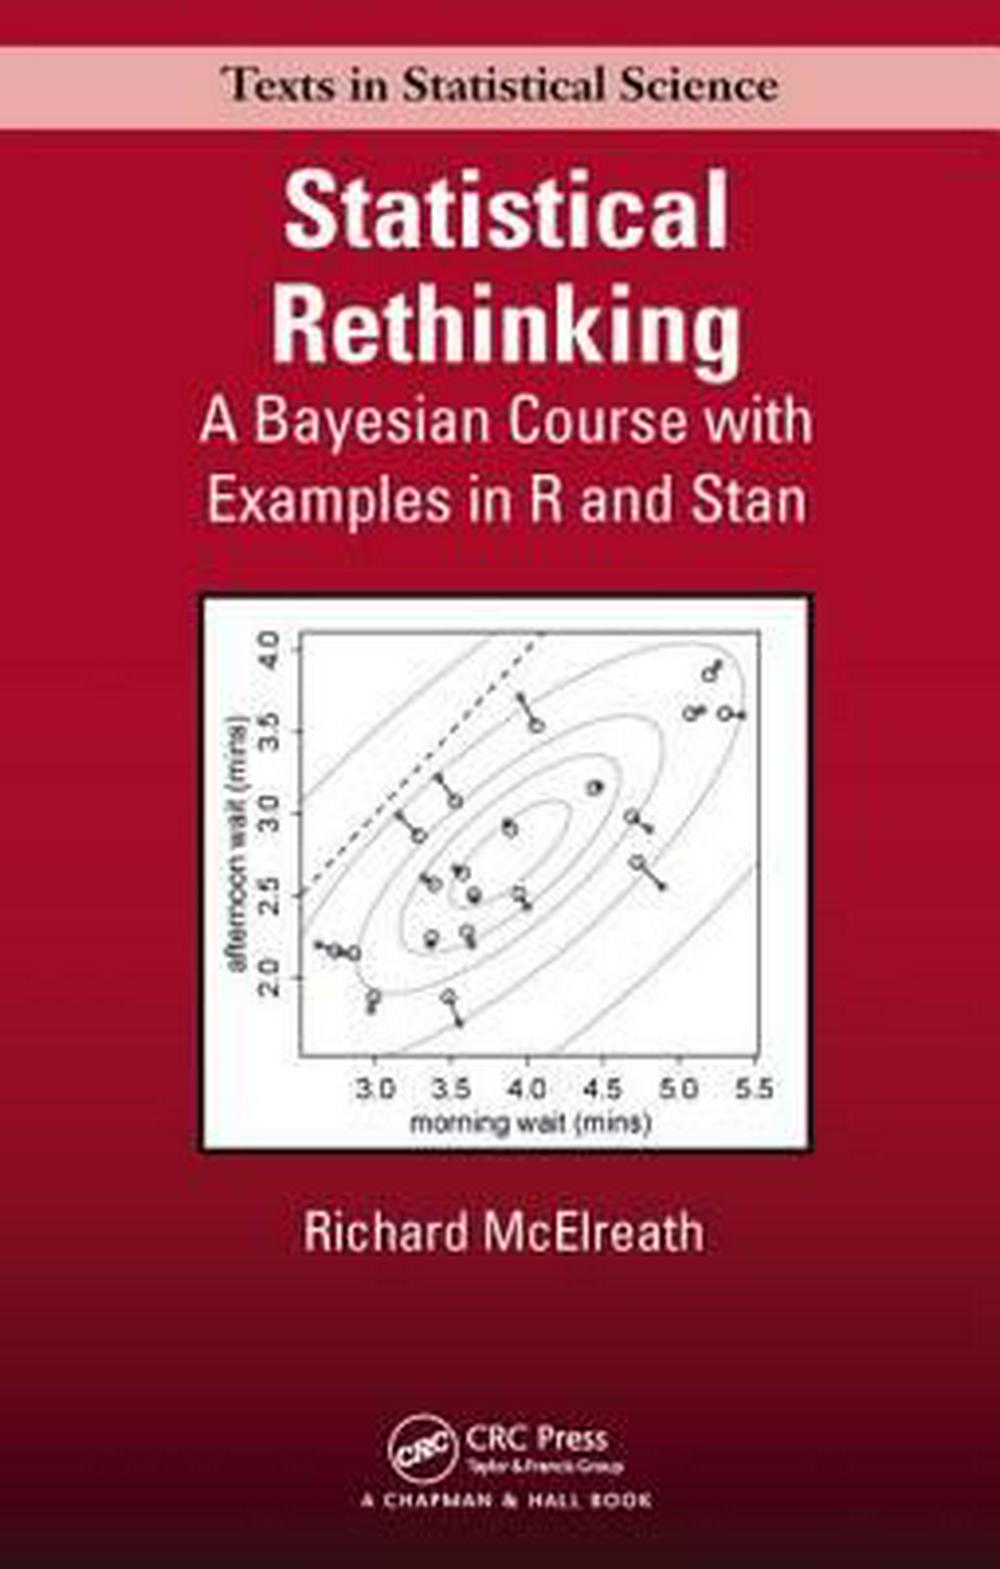 Statistical RethinkingA Bayesian Course with R Examples by Richard McElreath, ISBN: 9781482253443